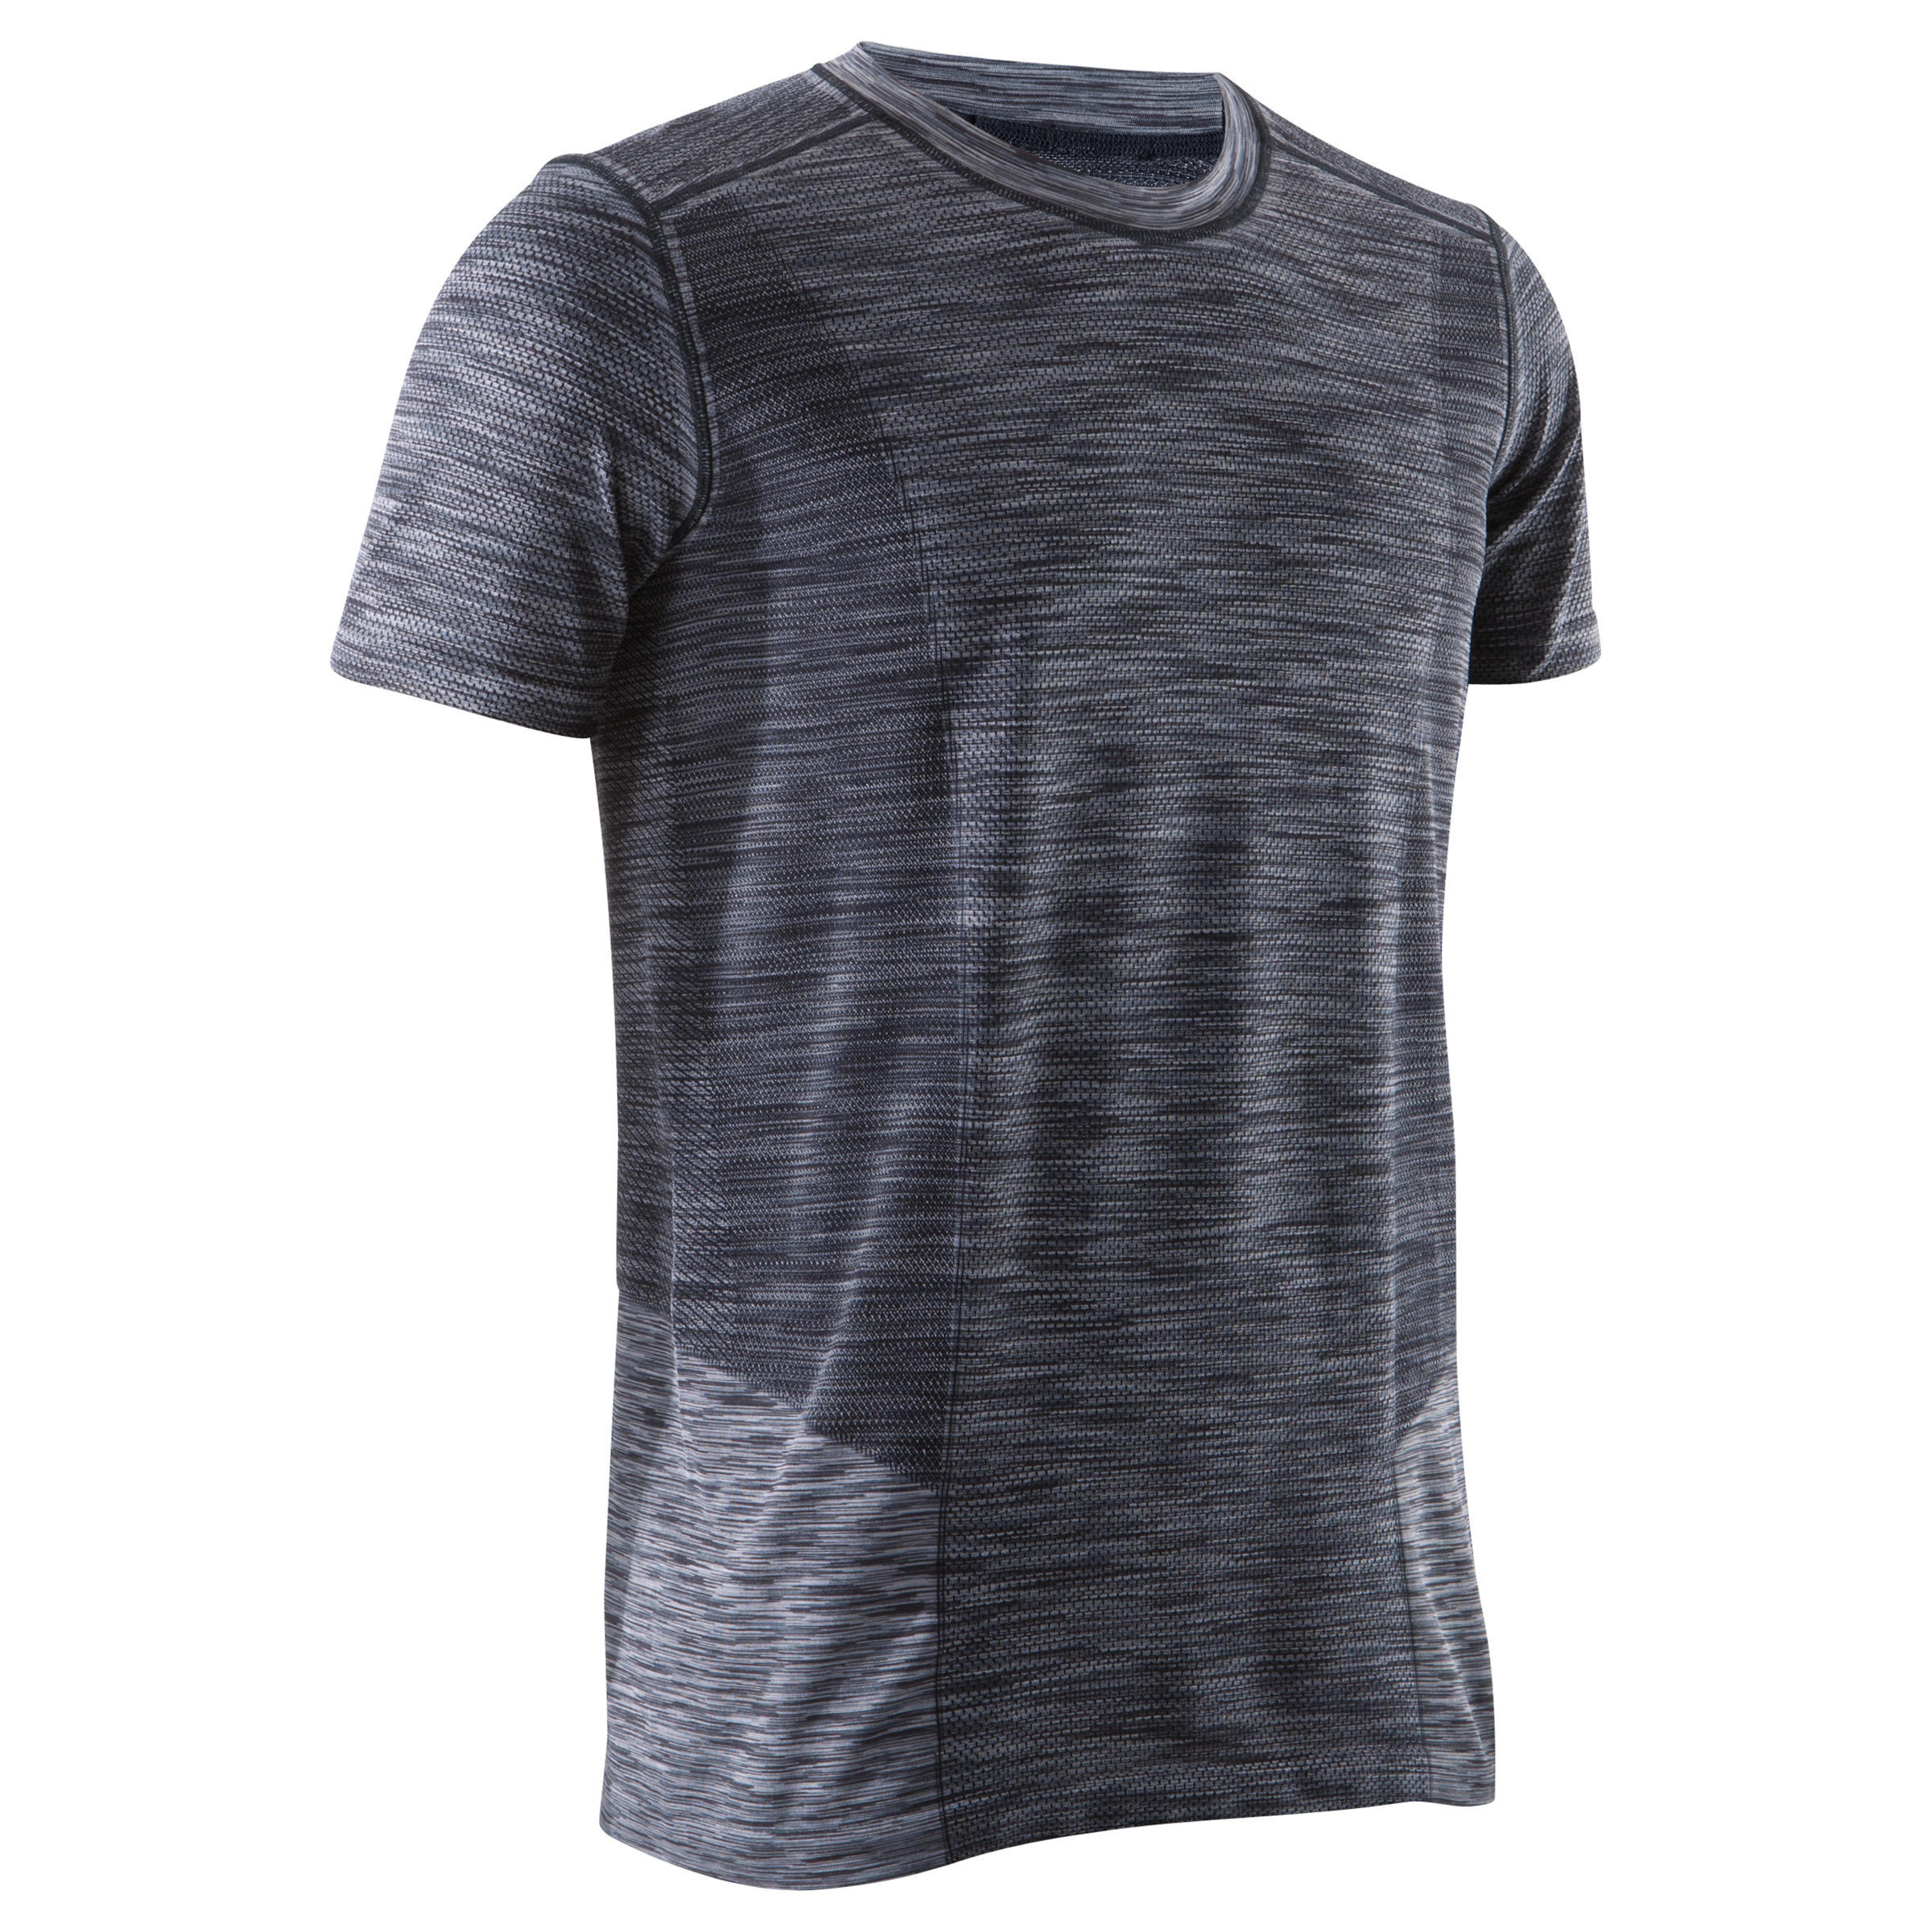 Seamless Yoga T-Shirt - Black/Grey